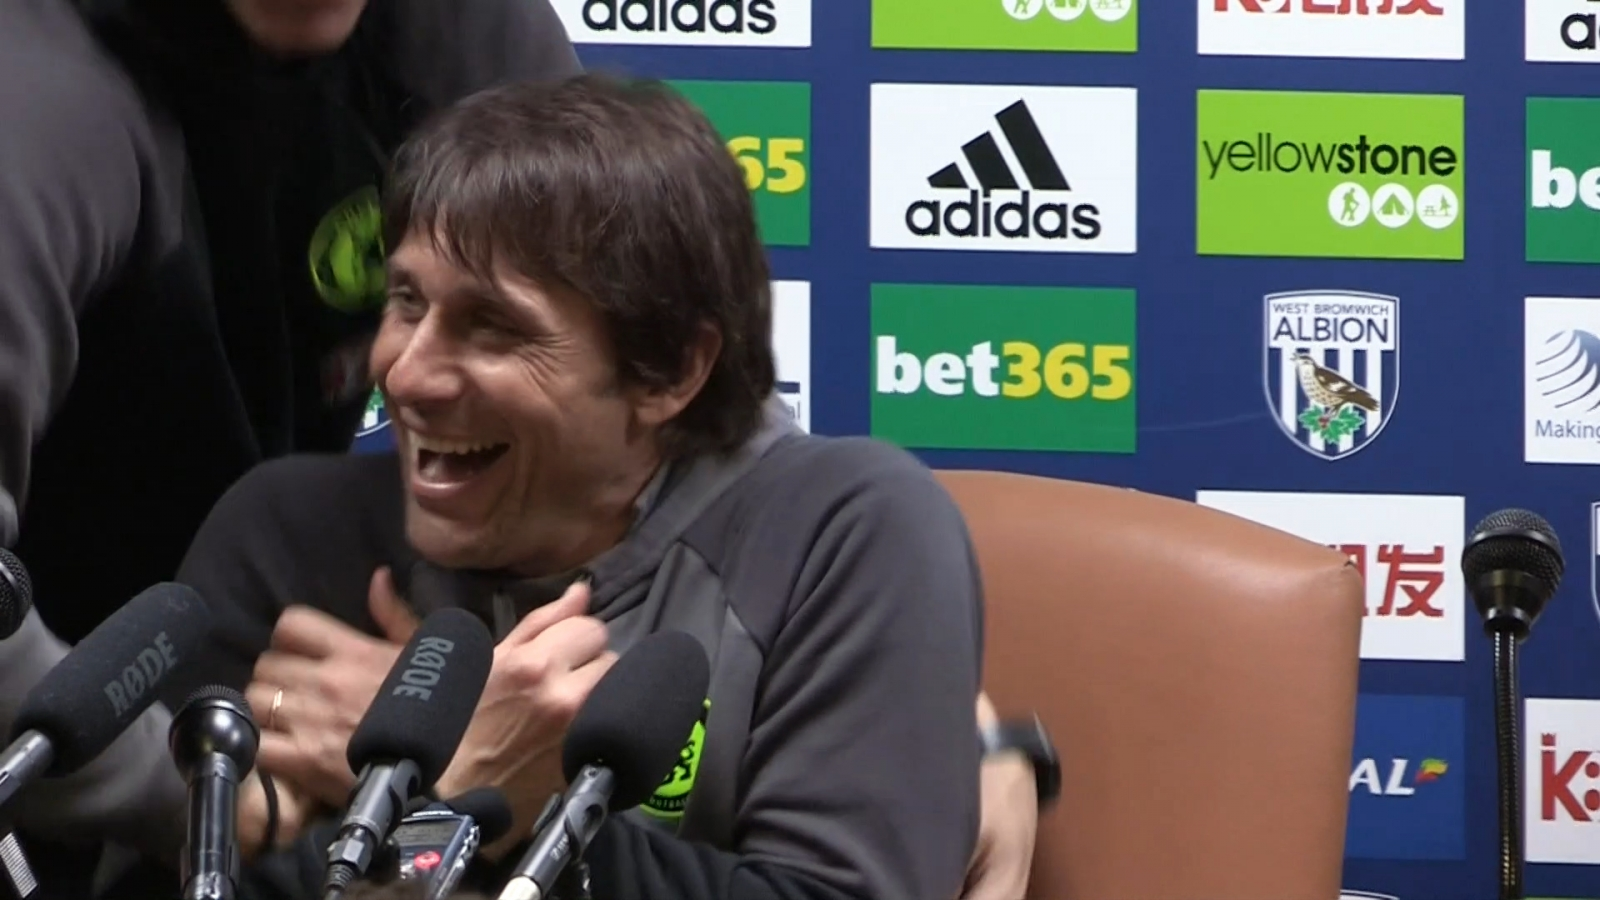 antonio-conte-is-abducted-by-costa-and-luiz-during-press-conference